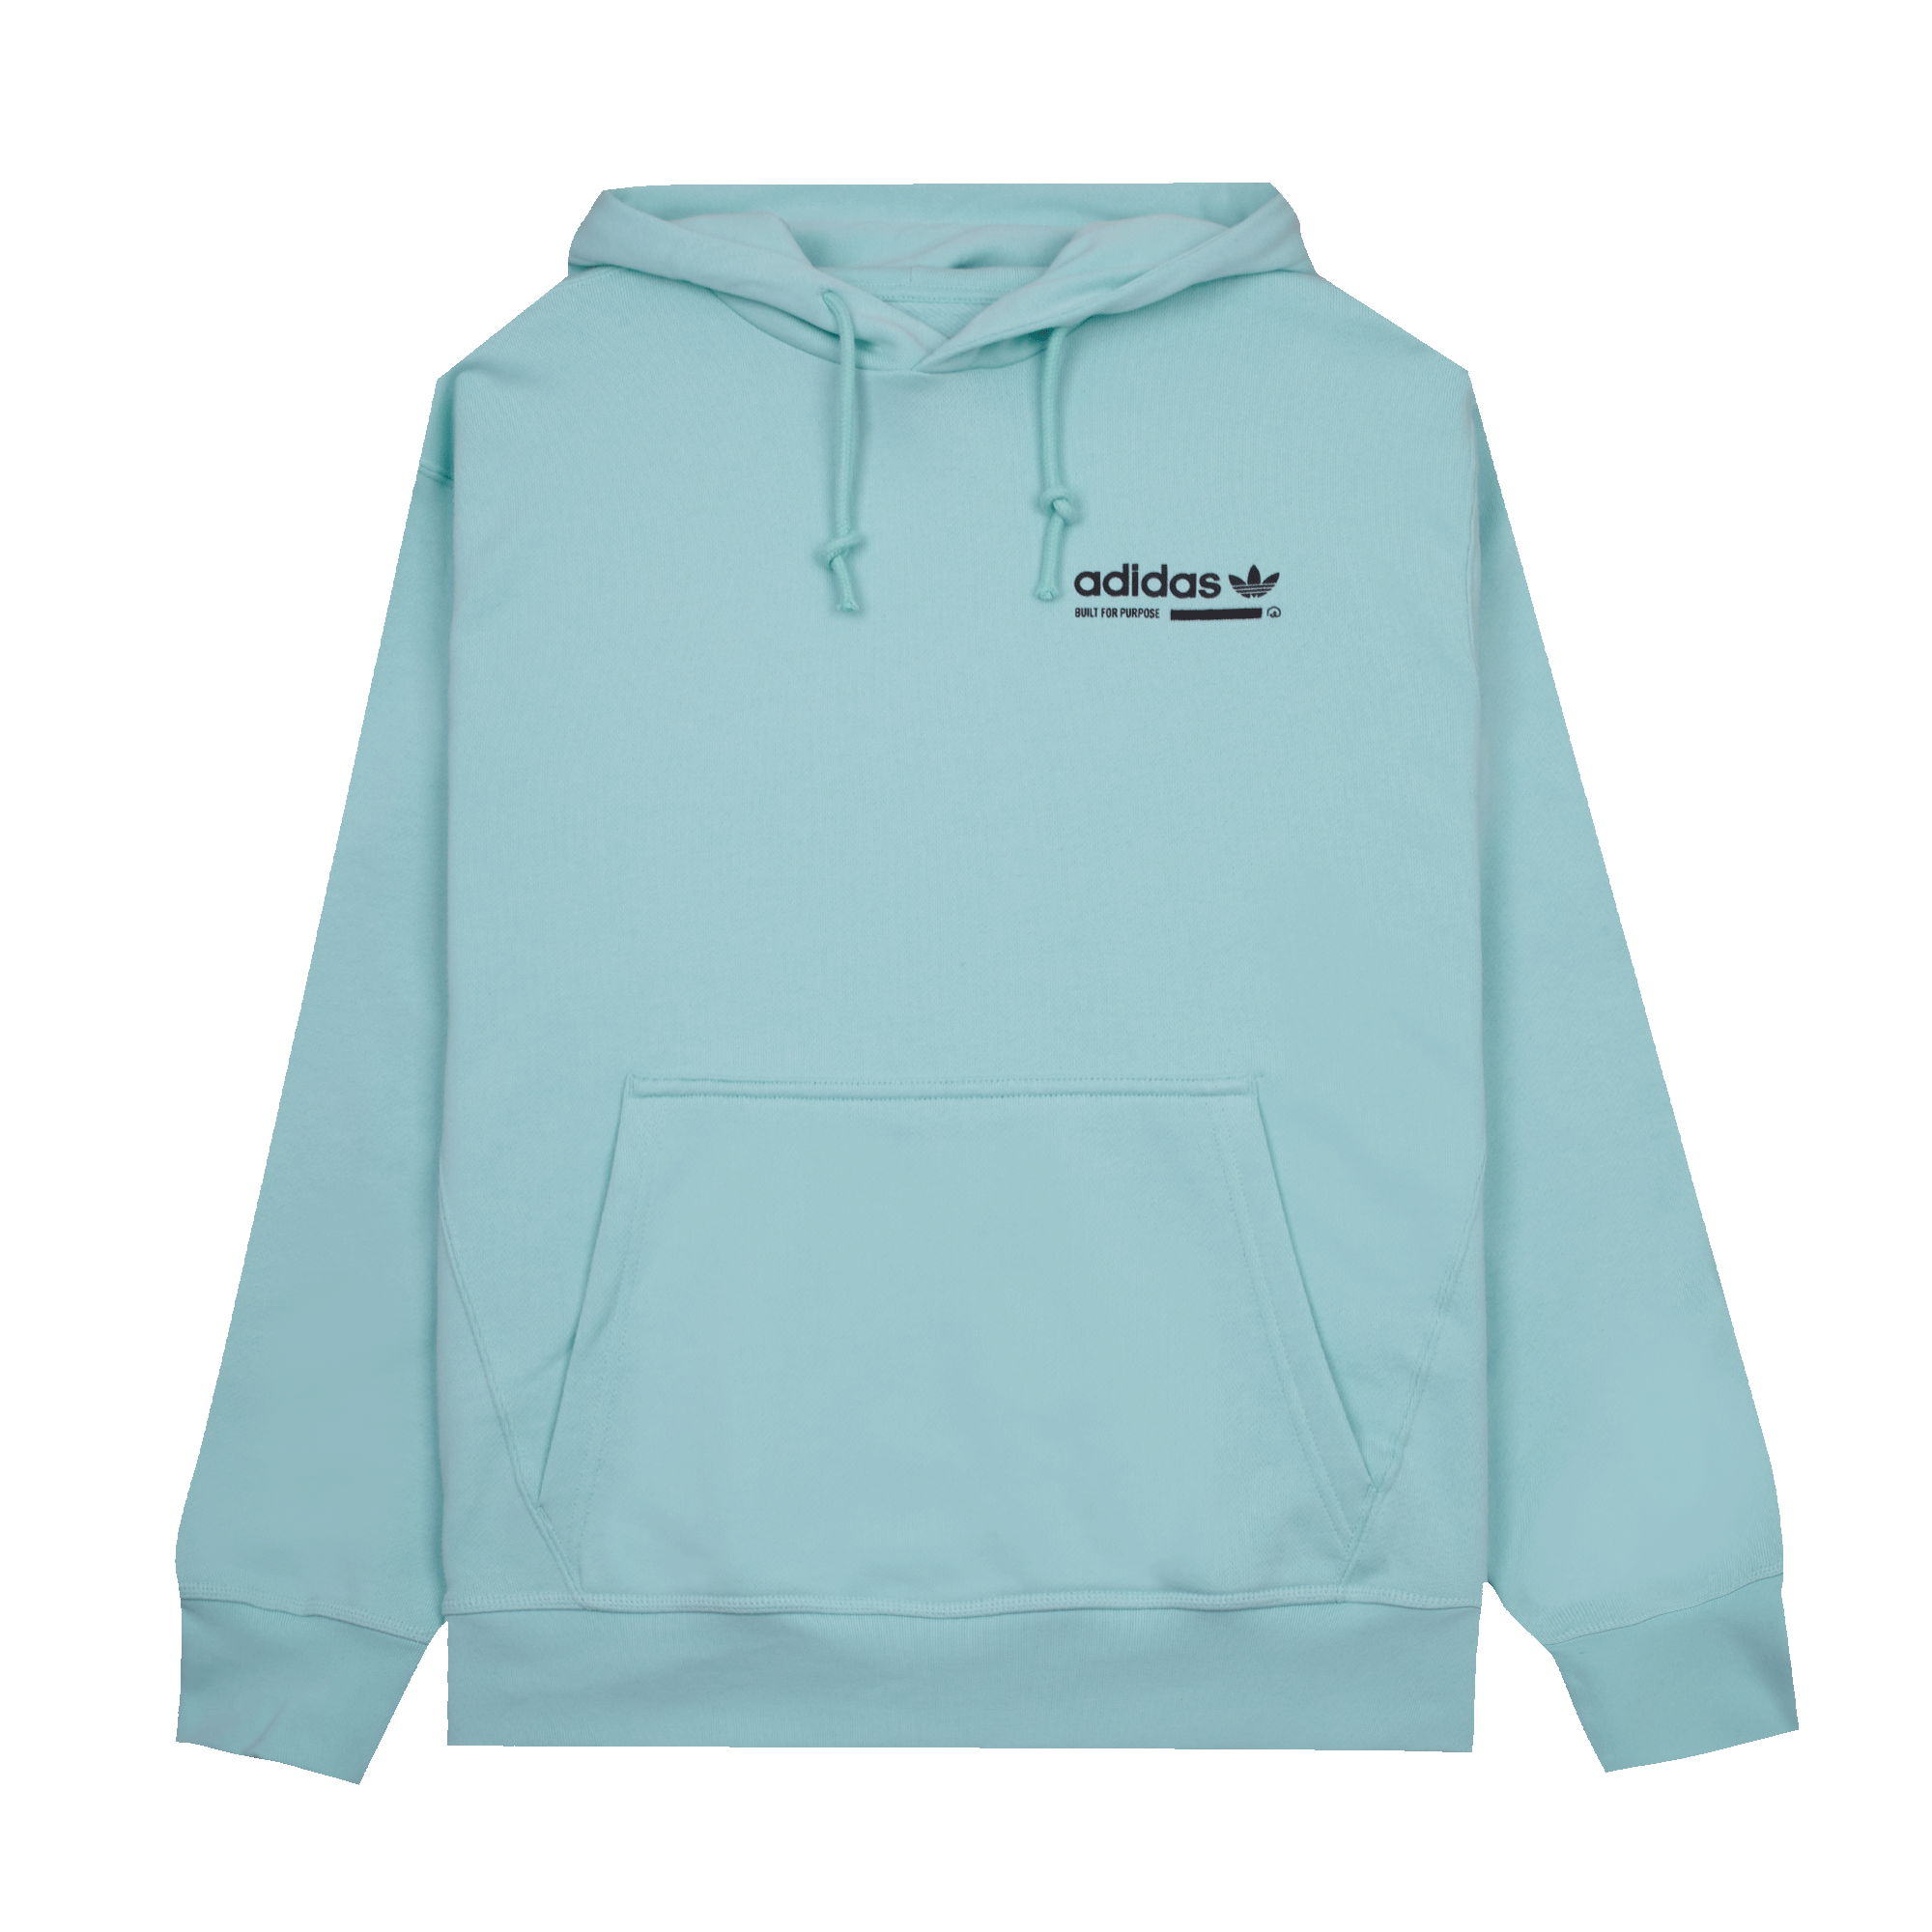 elegant shoes run shoes low cost adidas Kaval OTH Hoodie clear mint - Sweatshirts | Holypopstore.com